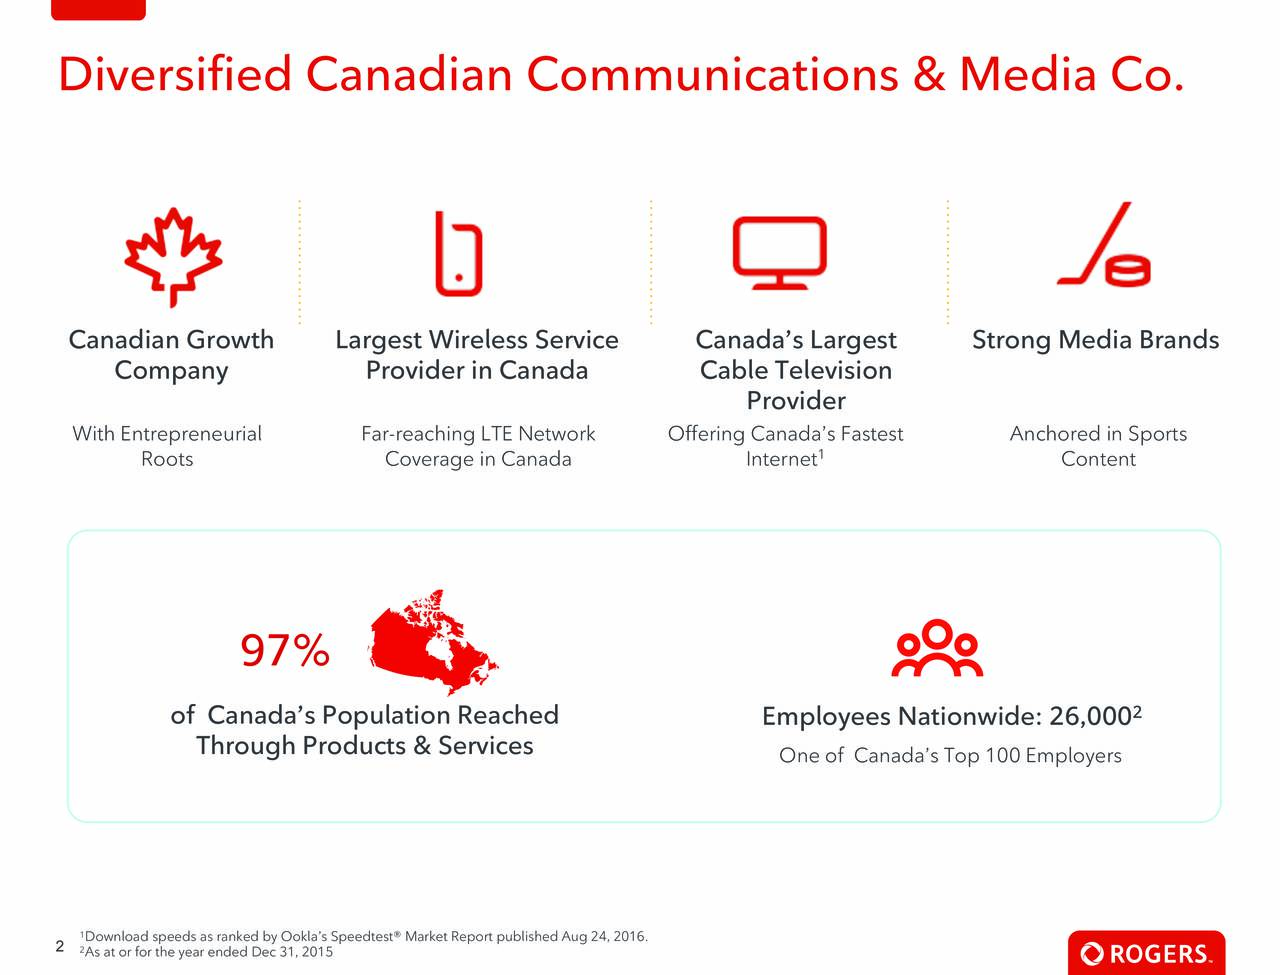 Canadian Growth Largest Wireless Service Canadas Largest Strong Media Brands Company Provider in Canada Cable Television Provider With Entrepreneurial Far-reaching LTE Network Offering Canadas Fastest Anchored in Sports 1 Roots Coverage in Canada Internet Content 97% of Canadas Population Reached Employees Nationwide: 26,000 2 Through Products & Services One of Canadas Top 100 Employers 1 2 2As at or for the year ended Dec 31, 2015edtest Market Report published Aug 24, 2016.